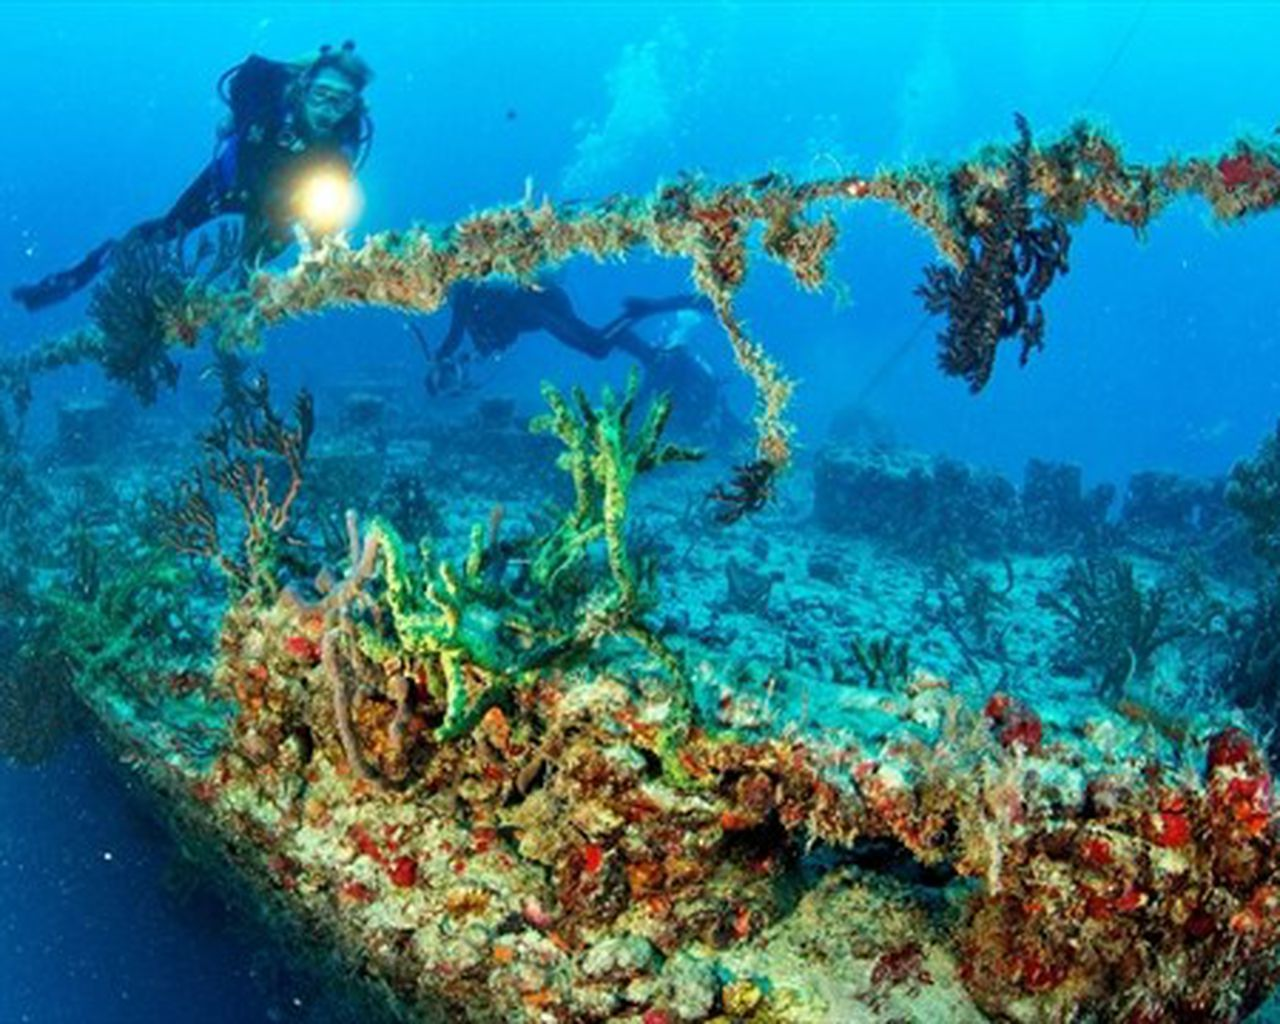 Divers mark 10th anniversary of retired navy ship as artificial reef in  Florida Keys   TheSpec.com